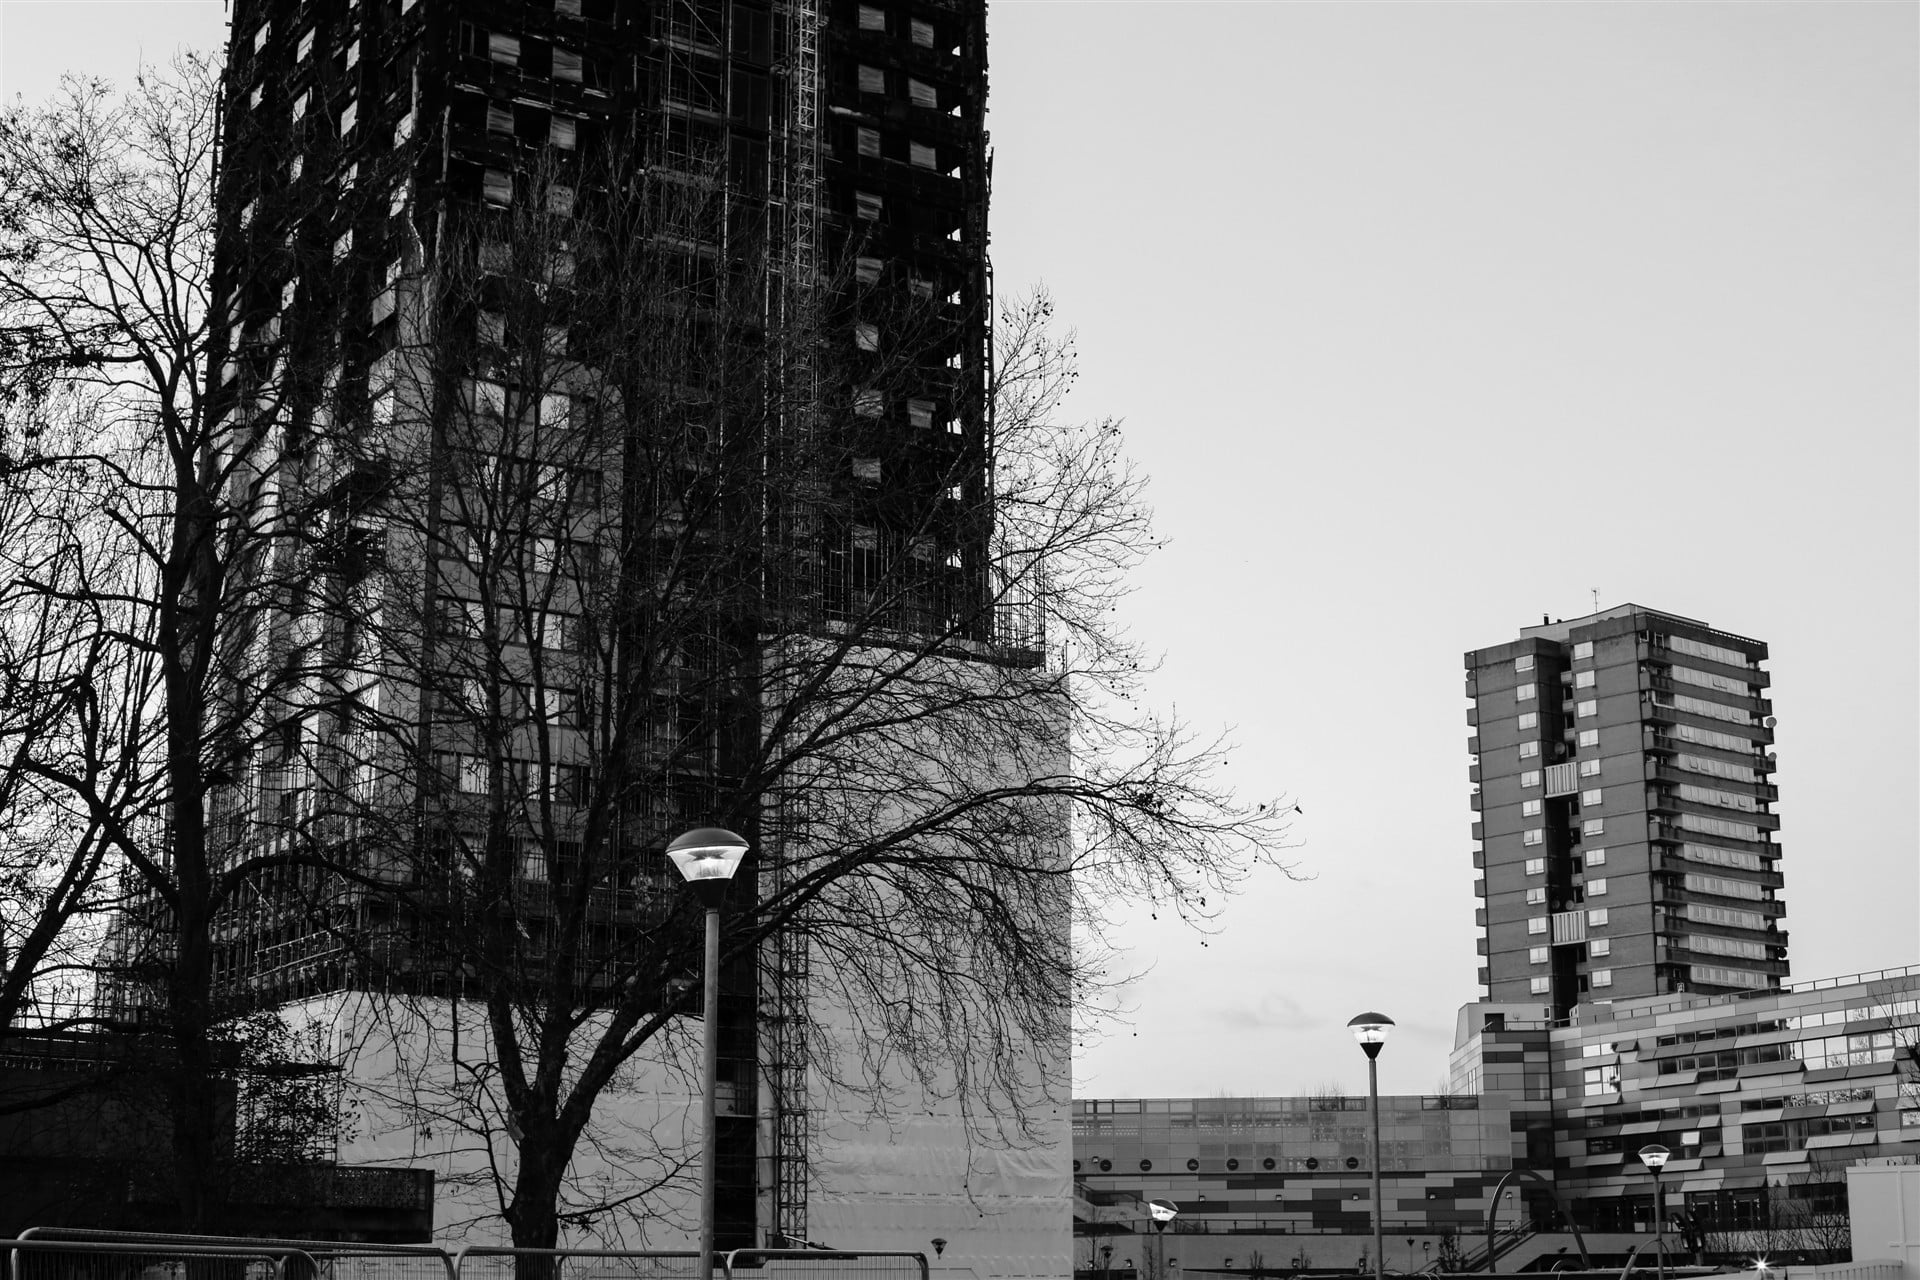 Grenfell was only the tip of the UK's social problem of poverty